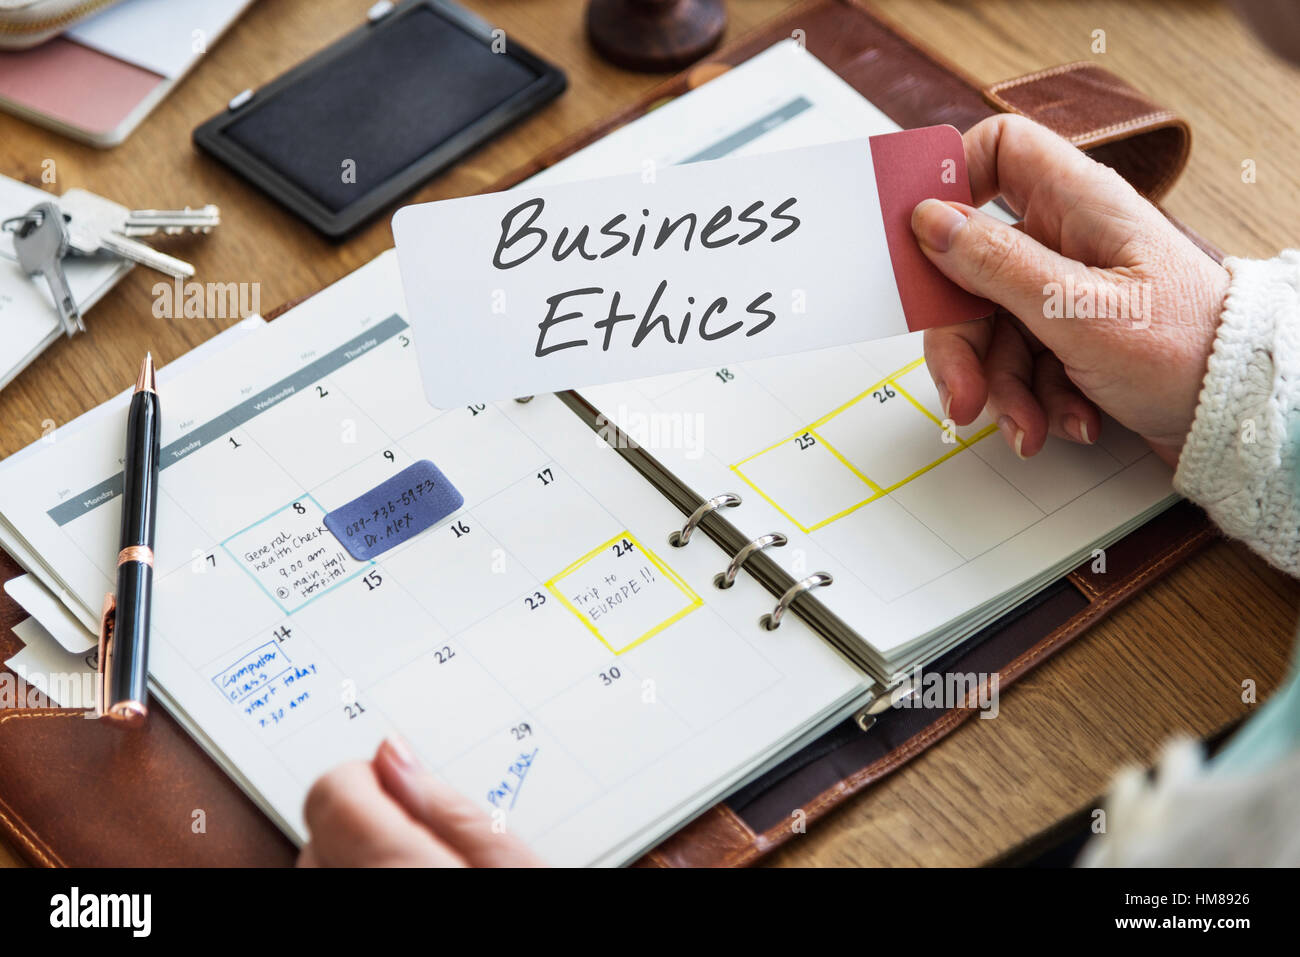 Business Ethics Integrity Moral Trustworthy Fair Trade Concept - Stock Image